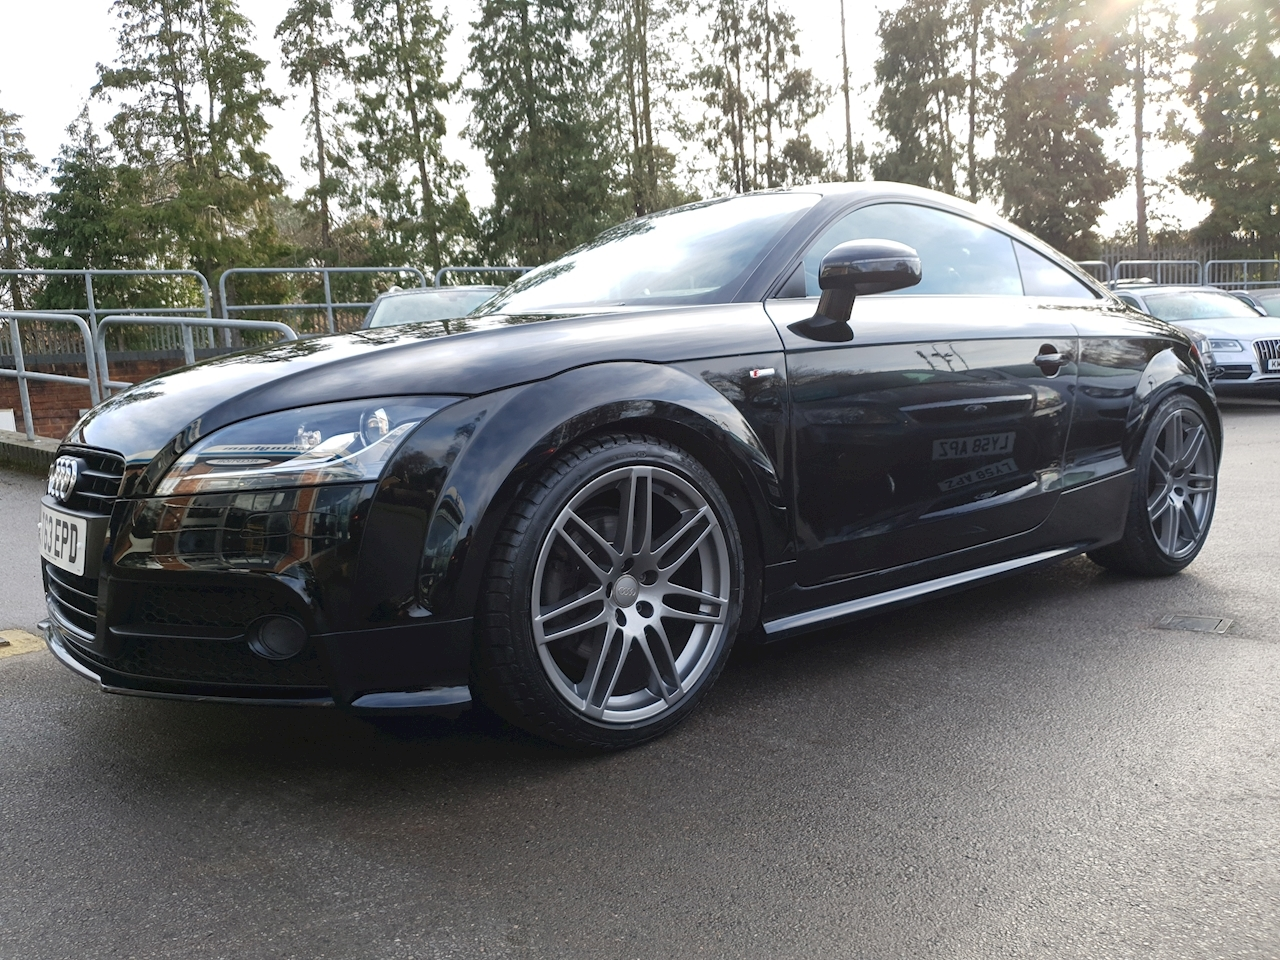 Audi 2.0 TFSI Quattro  Black Edition  WITH  NAV  Coupe 2dr Petrol S Tronic (164 g/km, 208 bhp)